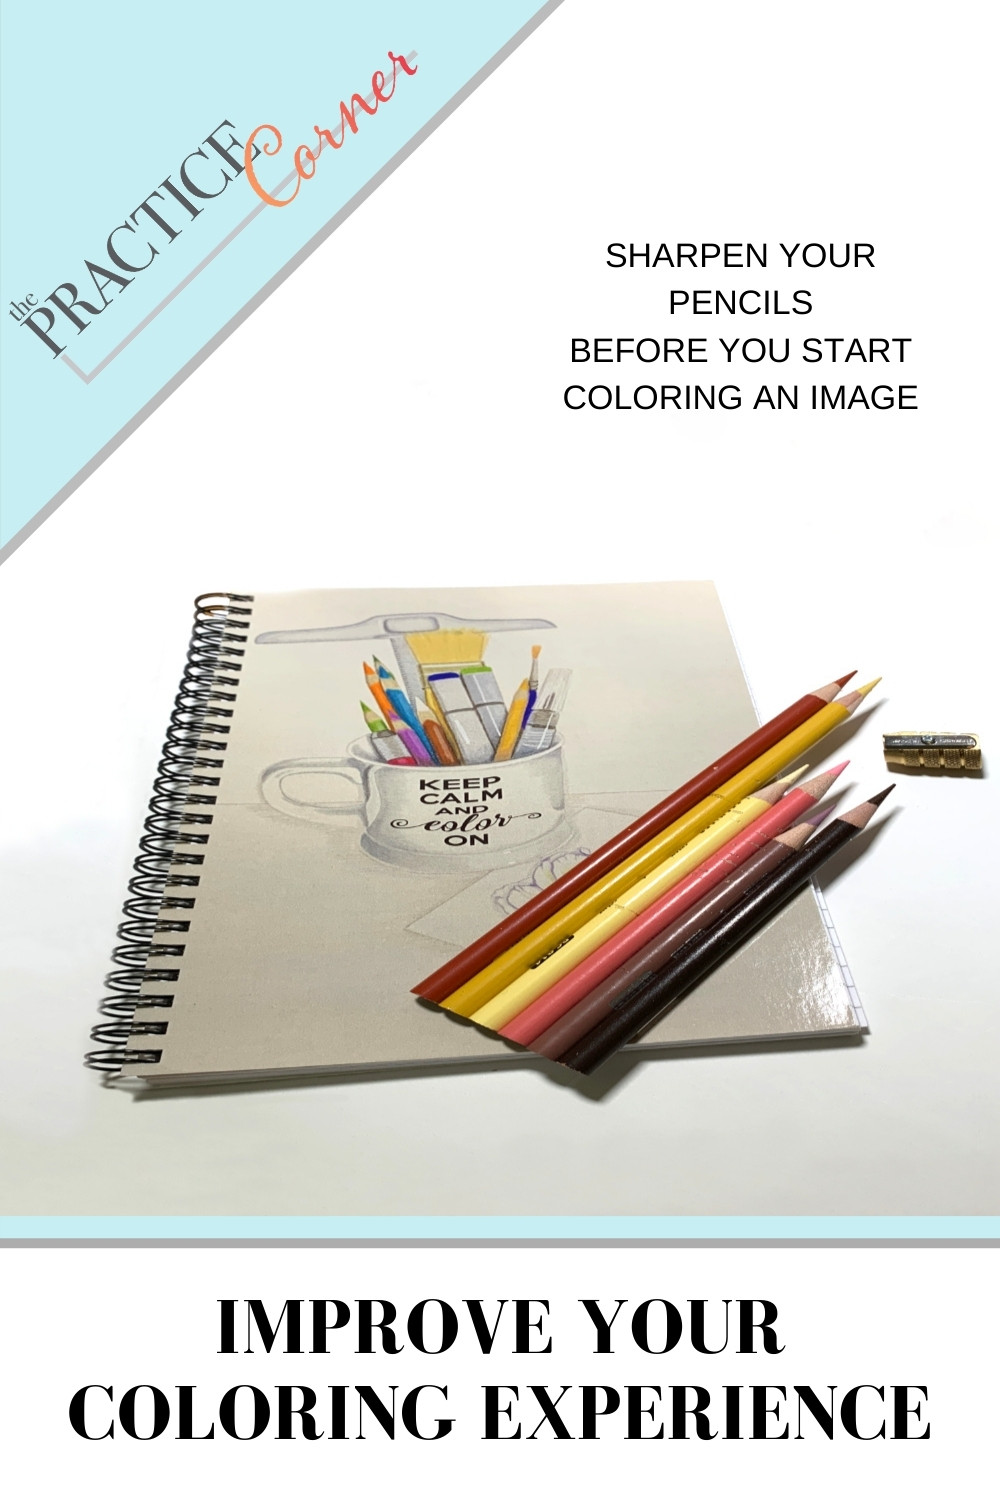 Tips to improve your coloring experience | Sharpen colored pencils | Copic marker maintenance #thepracticecorner #coloringtips